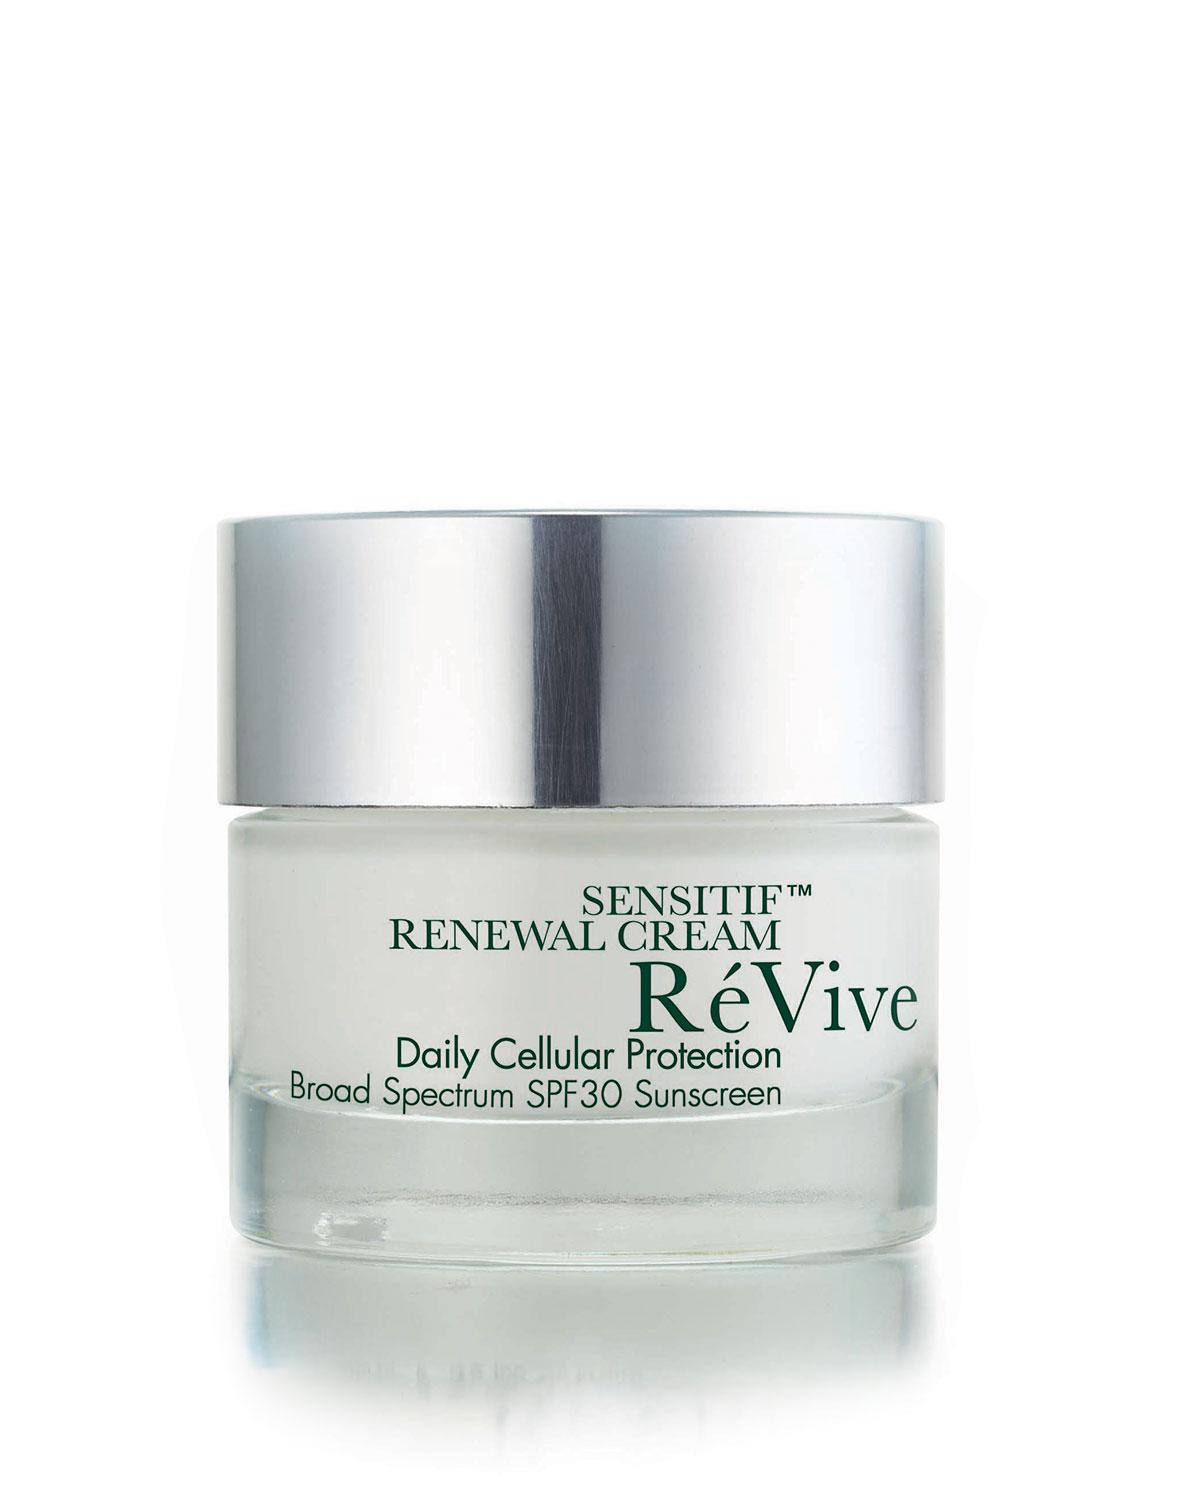 Revive Sensitif™ Renewal Cream Daily Cellular Protection Broad Spectrum Spf 30 Sunscreen